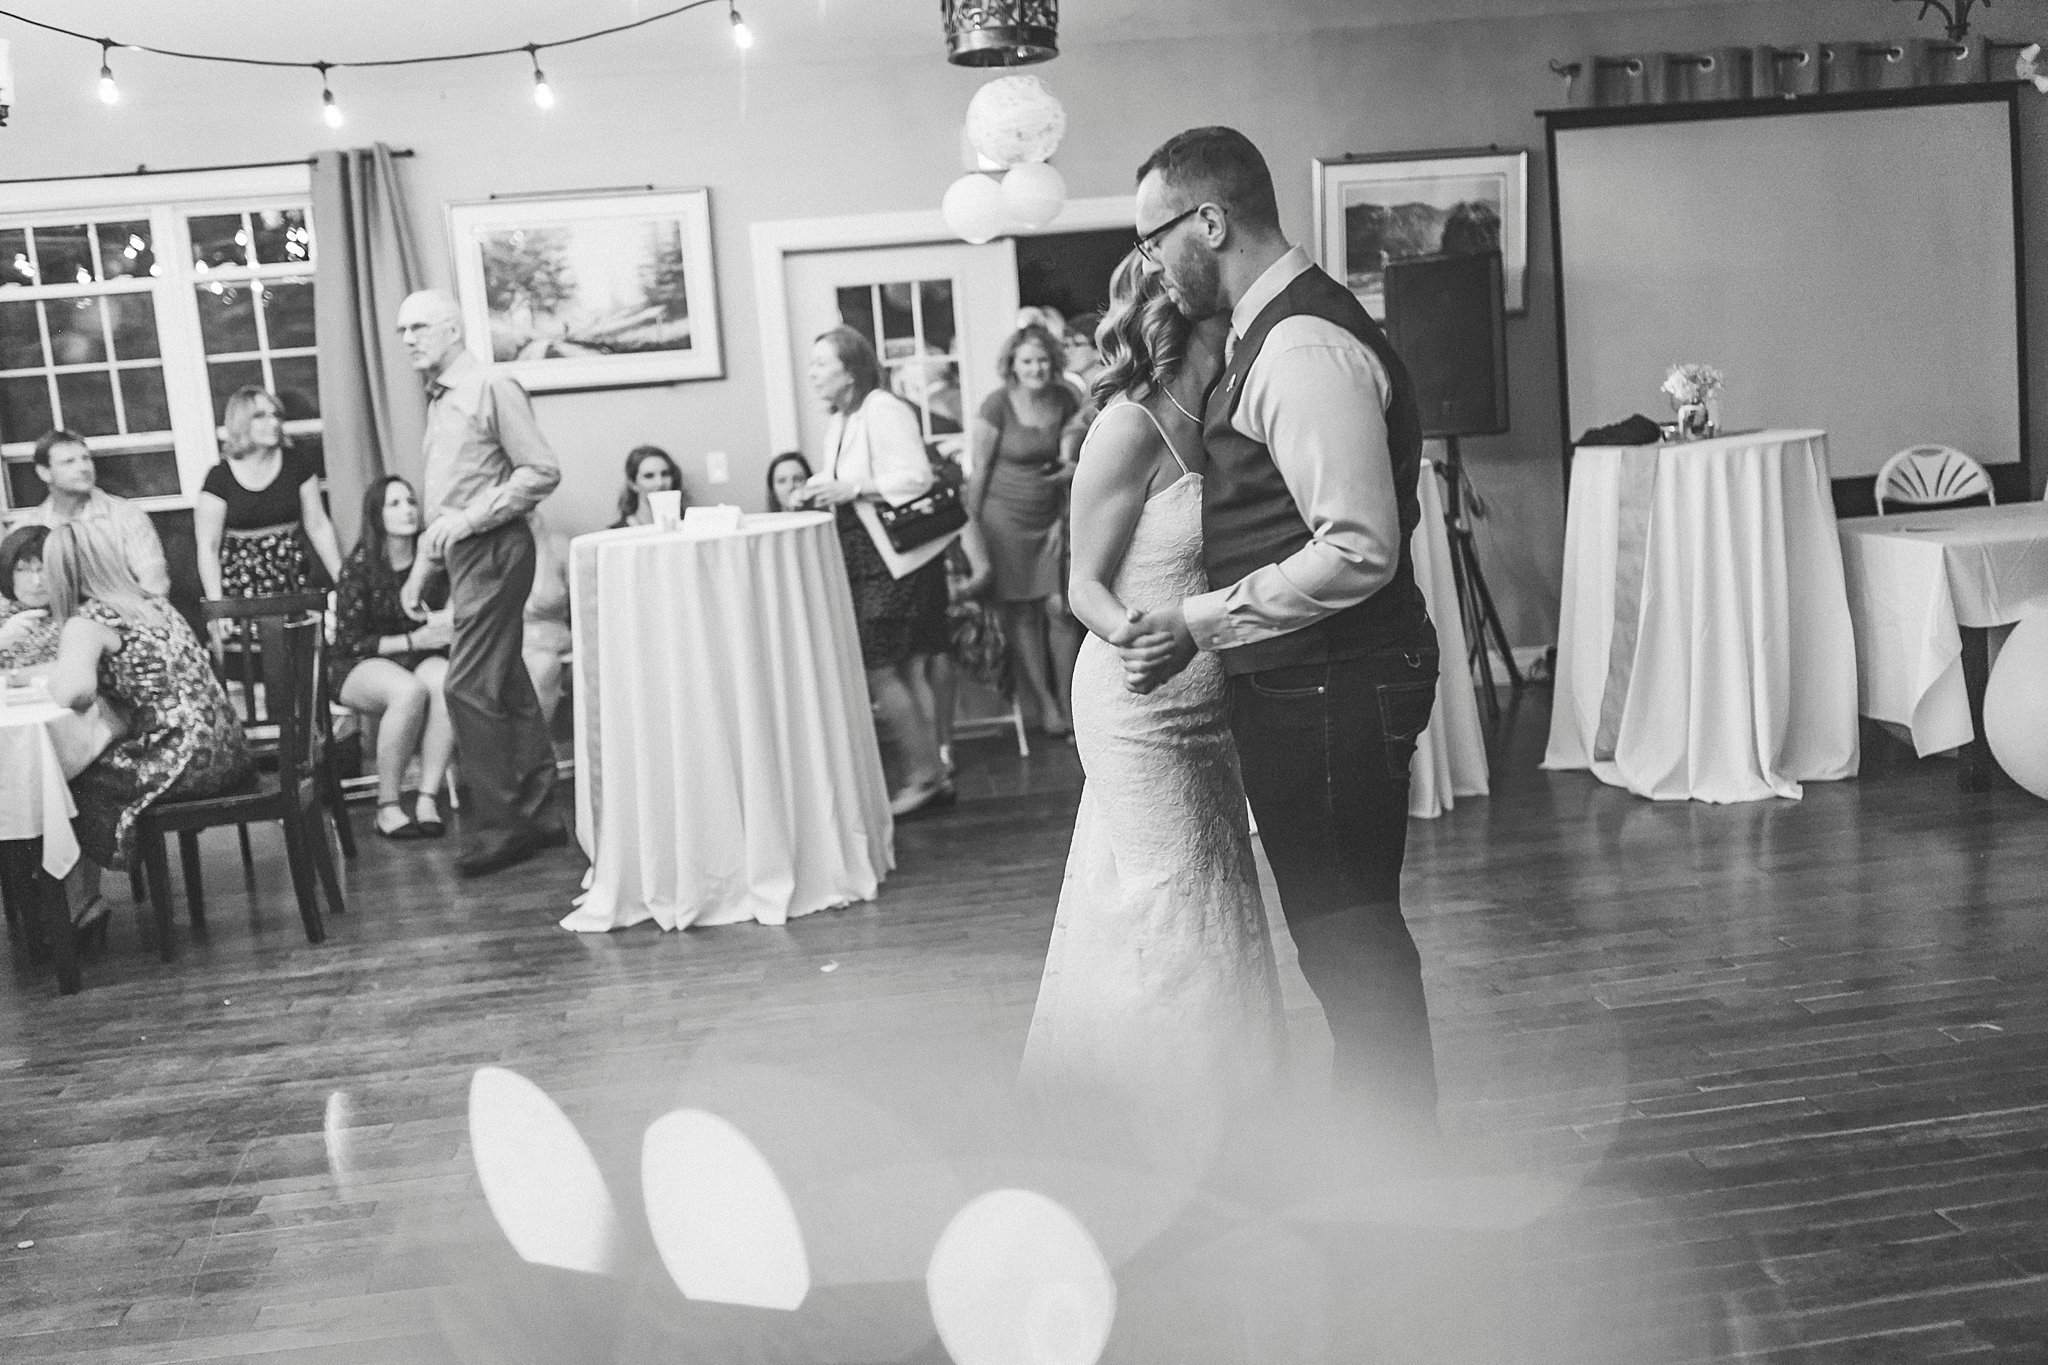 Bride and Groom share first dance at their St. John's, Newfoundland wedding